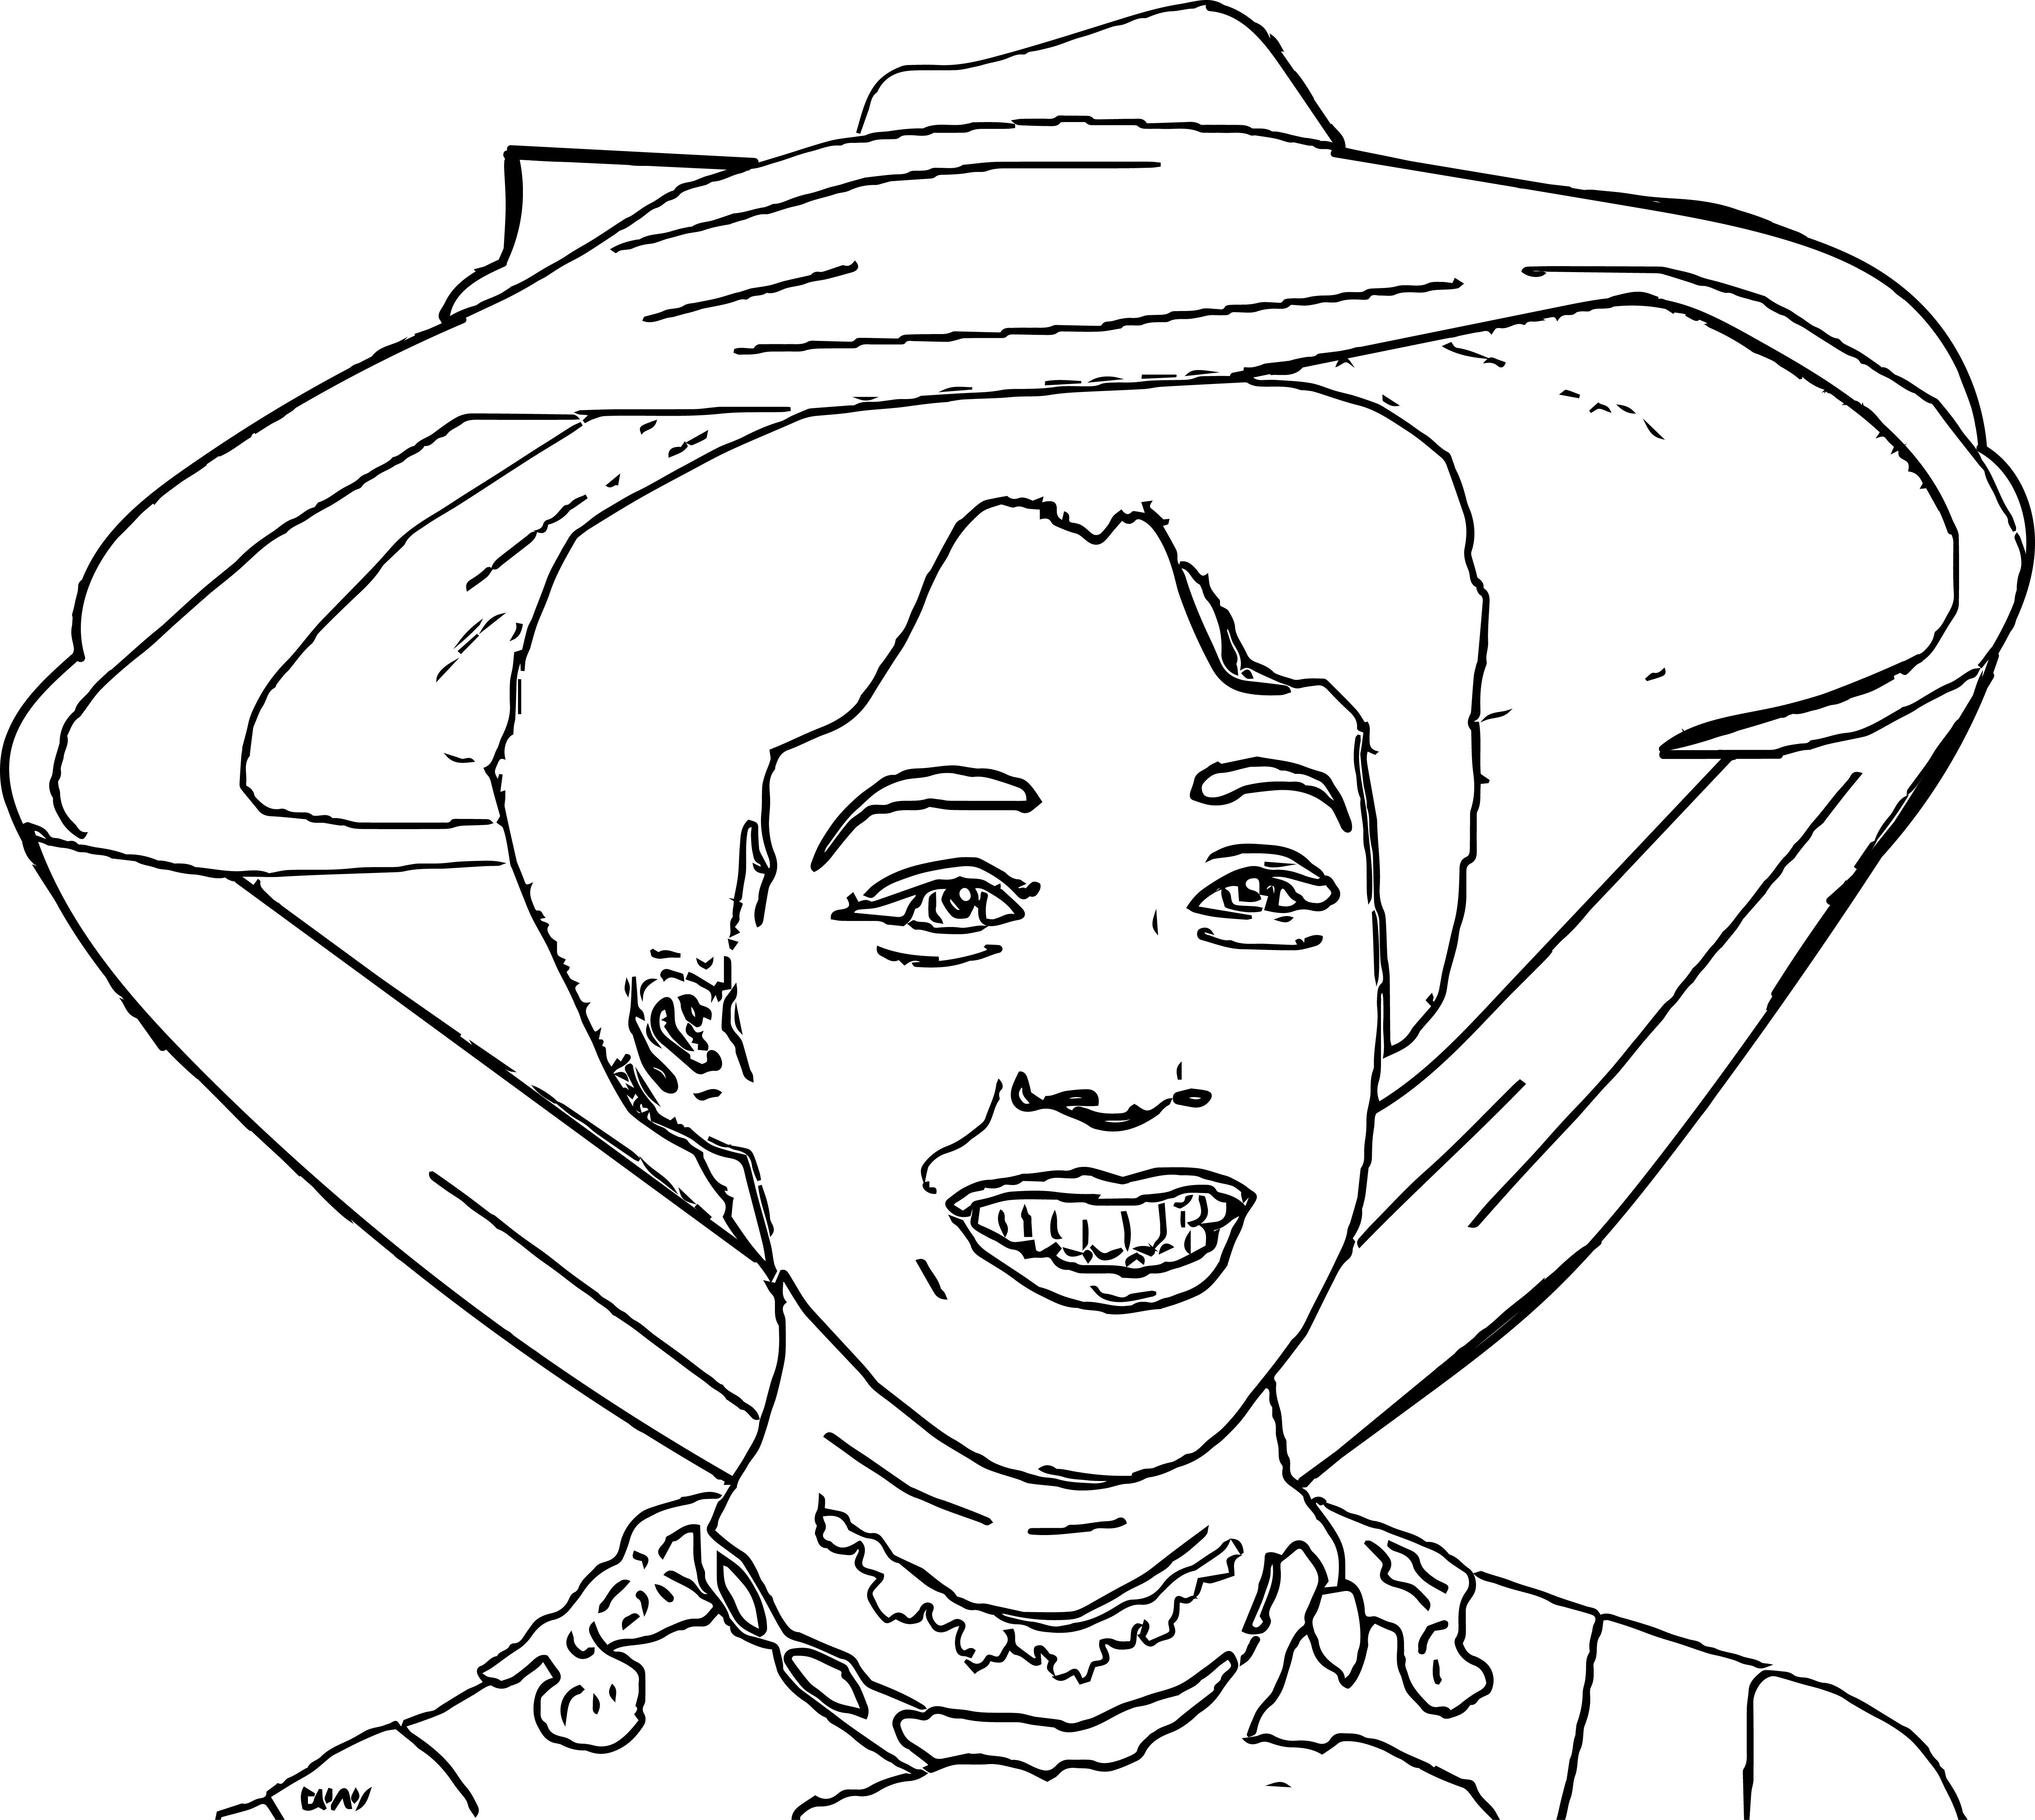 Mary Poppins Coloring Pages | wecoloringpage | Pinterest